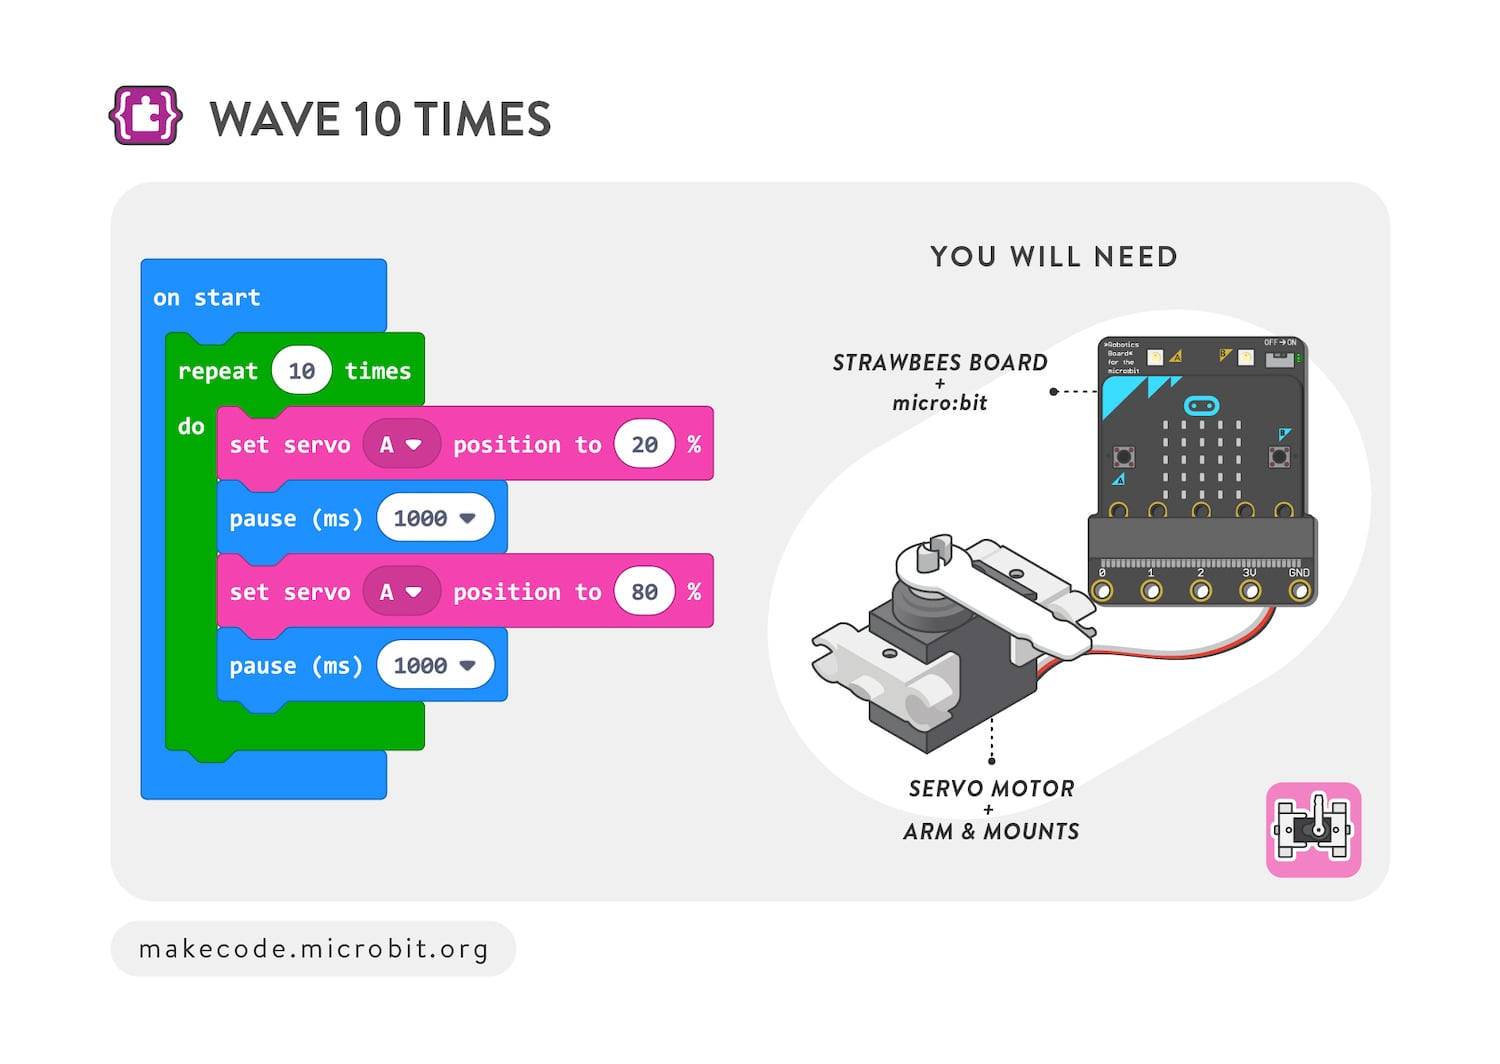 Wave 10 times